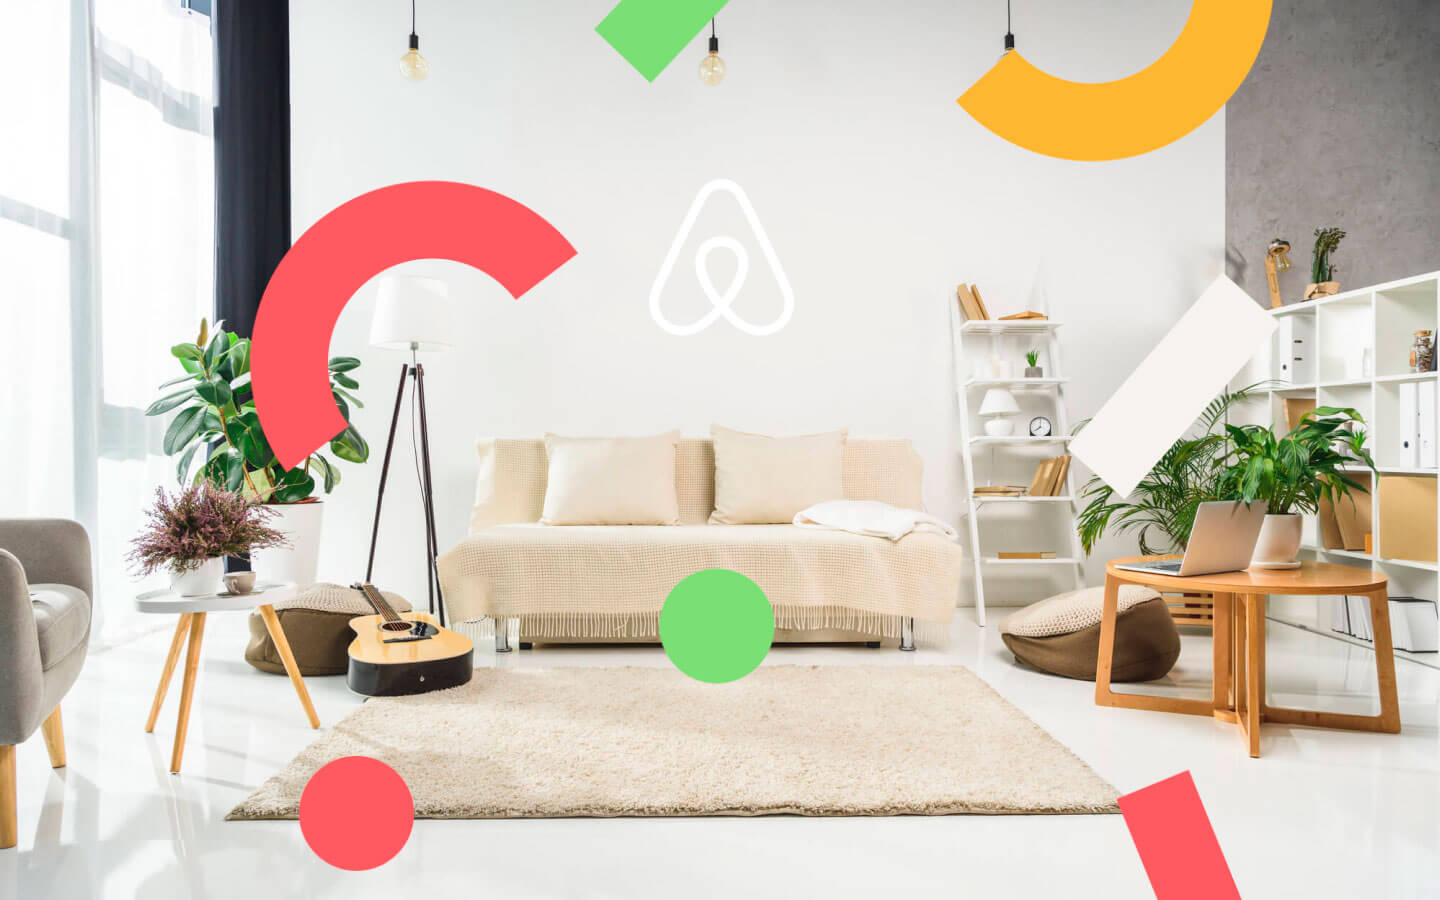 Guest and host Airbnb's profiles